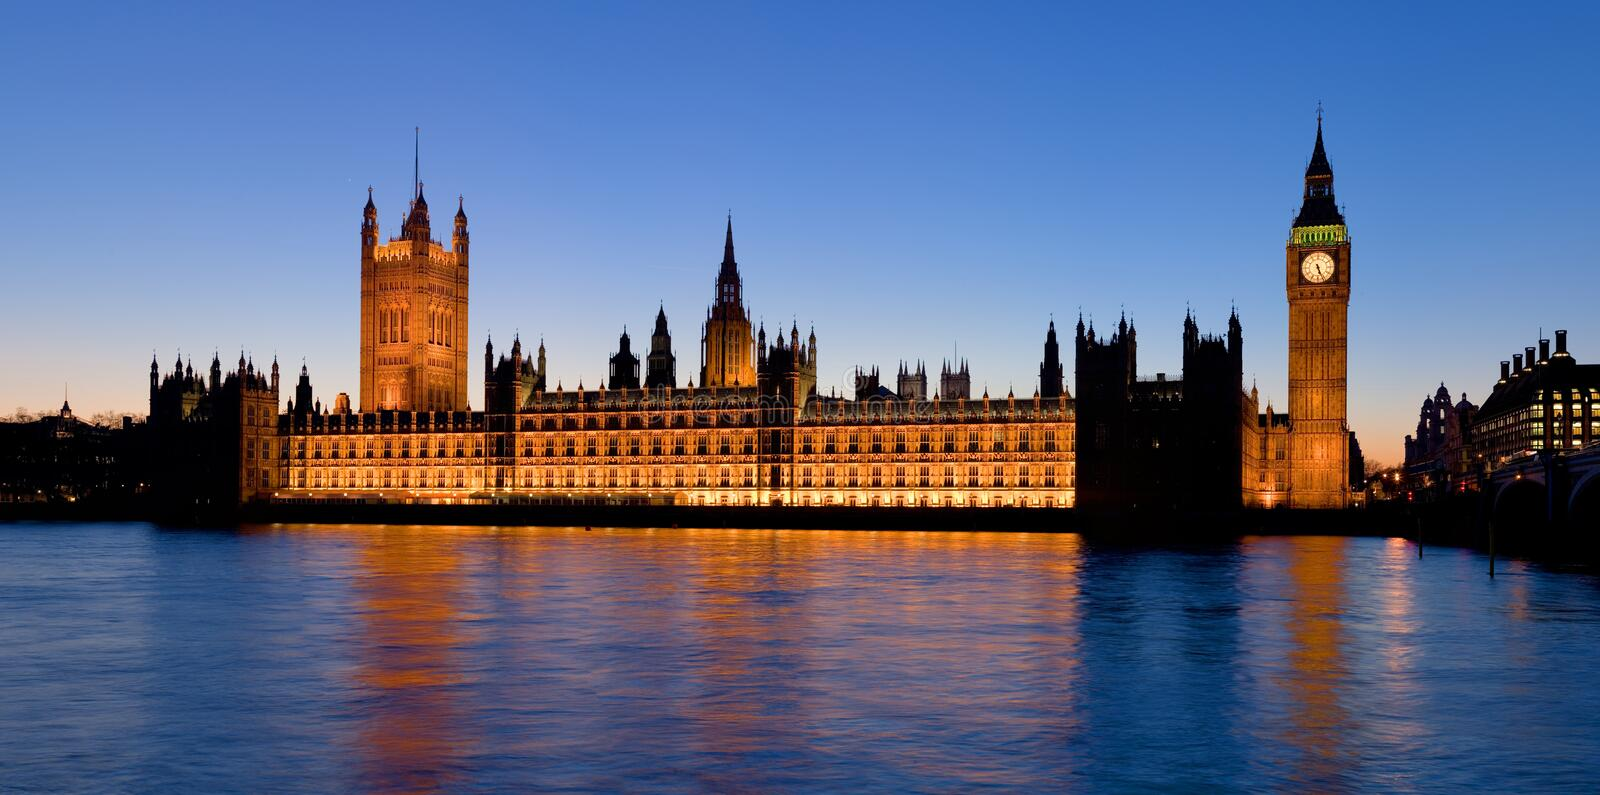 The Palace of Westminster at dusk. A high resolution panoramic view of the Palace of Westminster from the South Bank of the Thames in London, England stock image